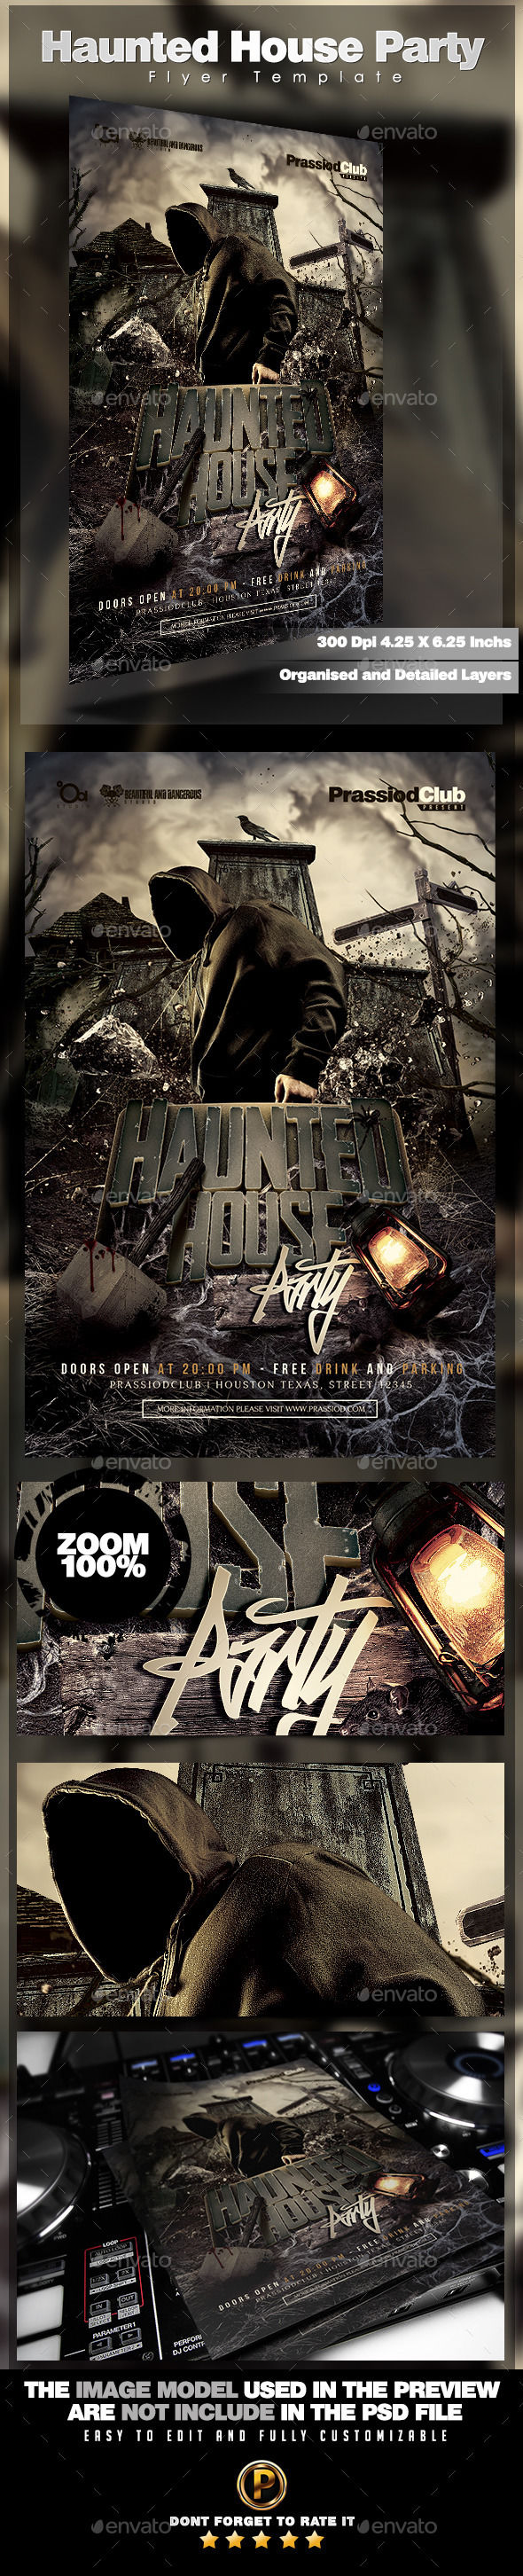 Haunted House Party Flyer Template by Prassiod (Halloween party flyer)